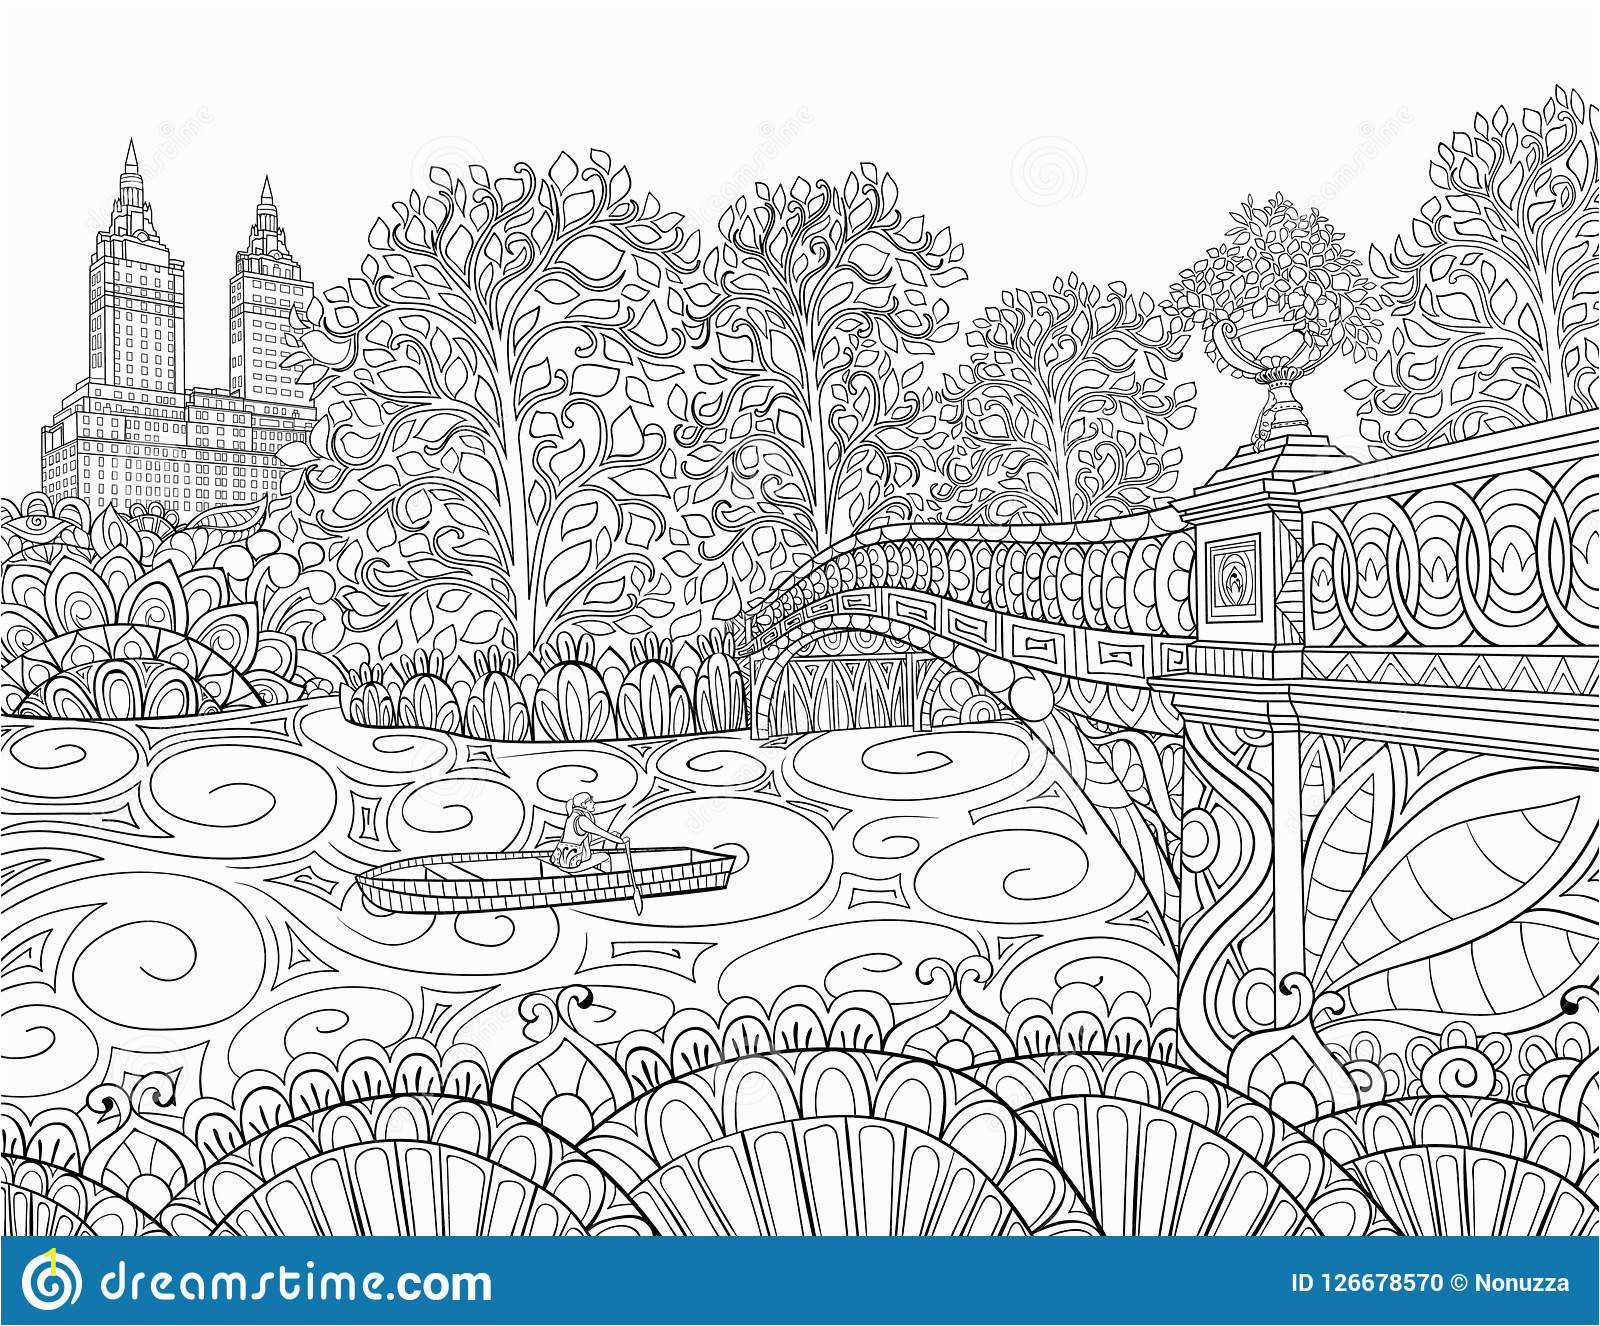 adult coloring bookpagendscape image for relaxing book pagendcsape trees road line art style pages